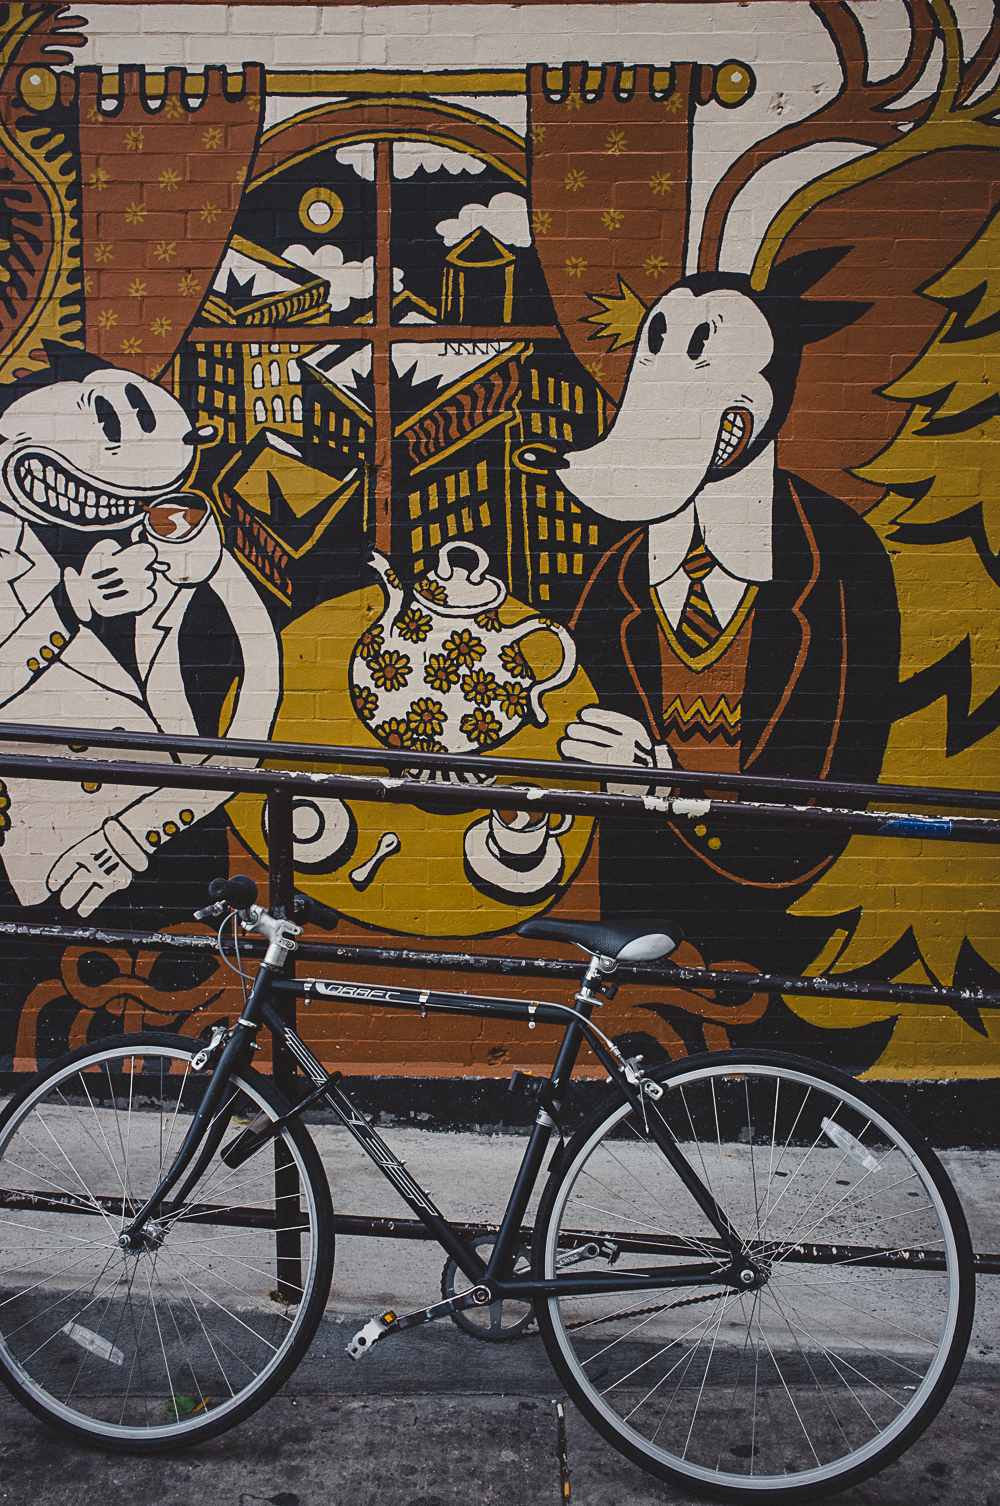 bike-street-art-williamsburg-brooklyn-nyc.jpg